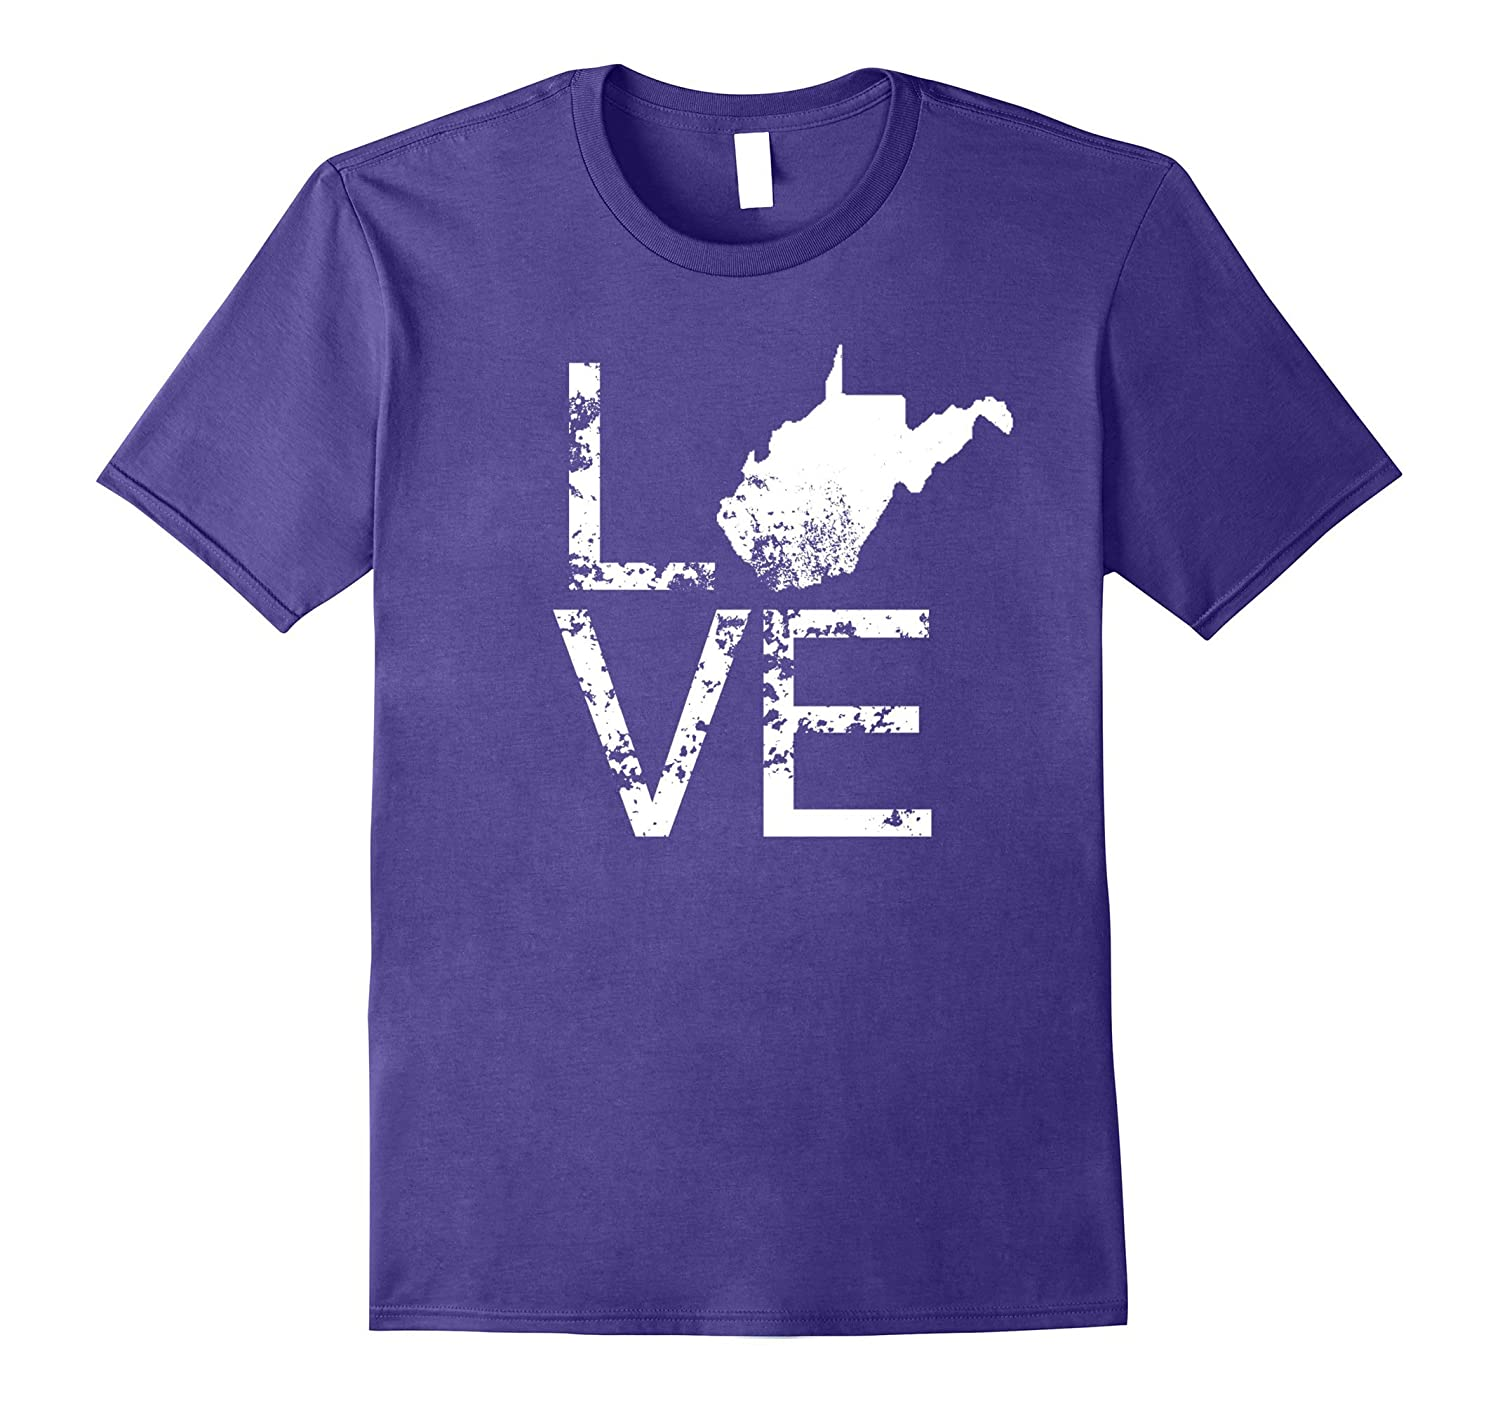 Outstanding West Virginia Love Shirt Wv State Home Map Distressed Tee Fl Home Interior And Landscaping Ymoonbapapsignezvosmurscom